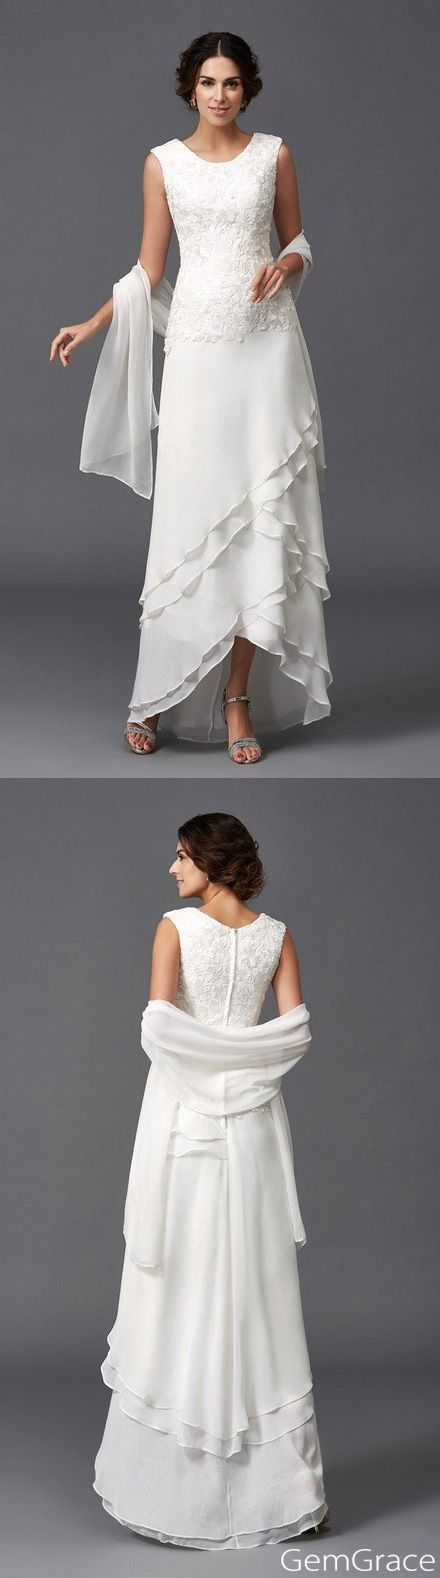 cc412cb91ae Older bride wedding dresses chiffon. Elegant for ages 40+ older brides